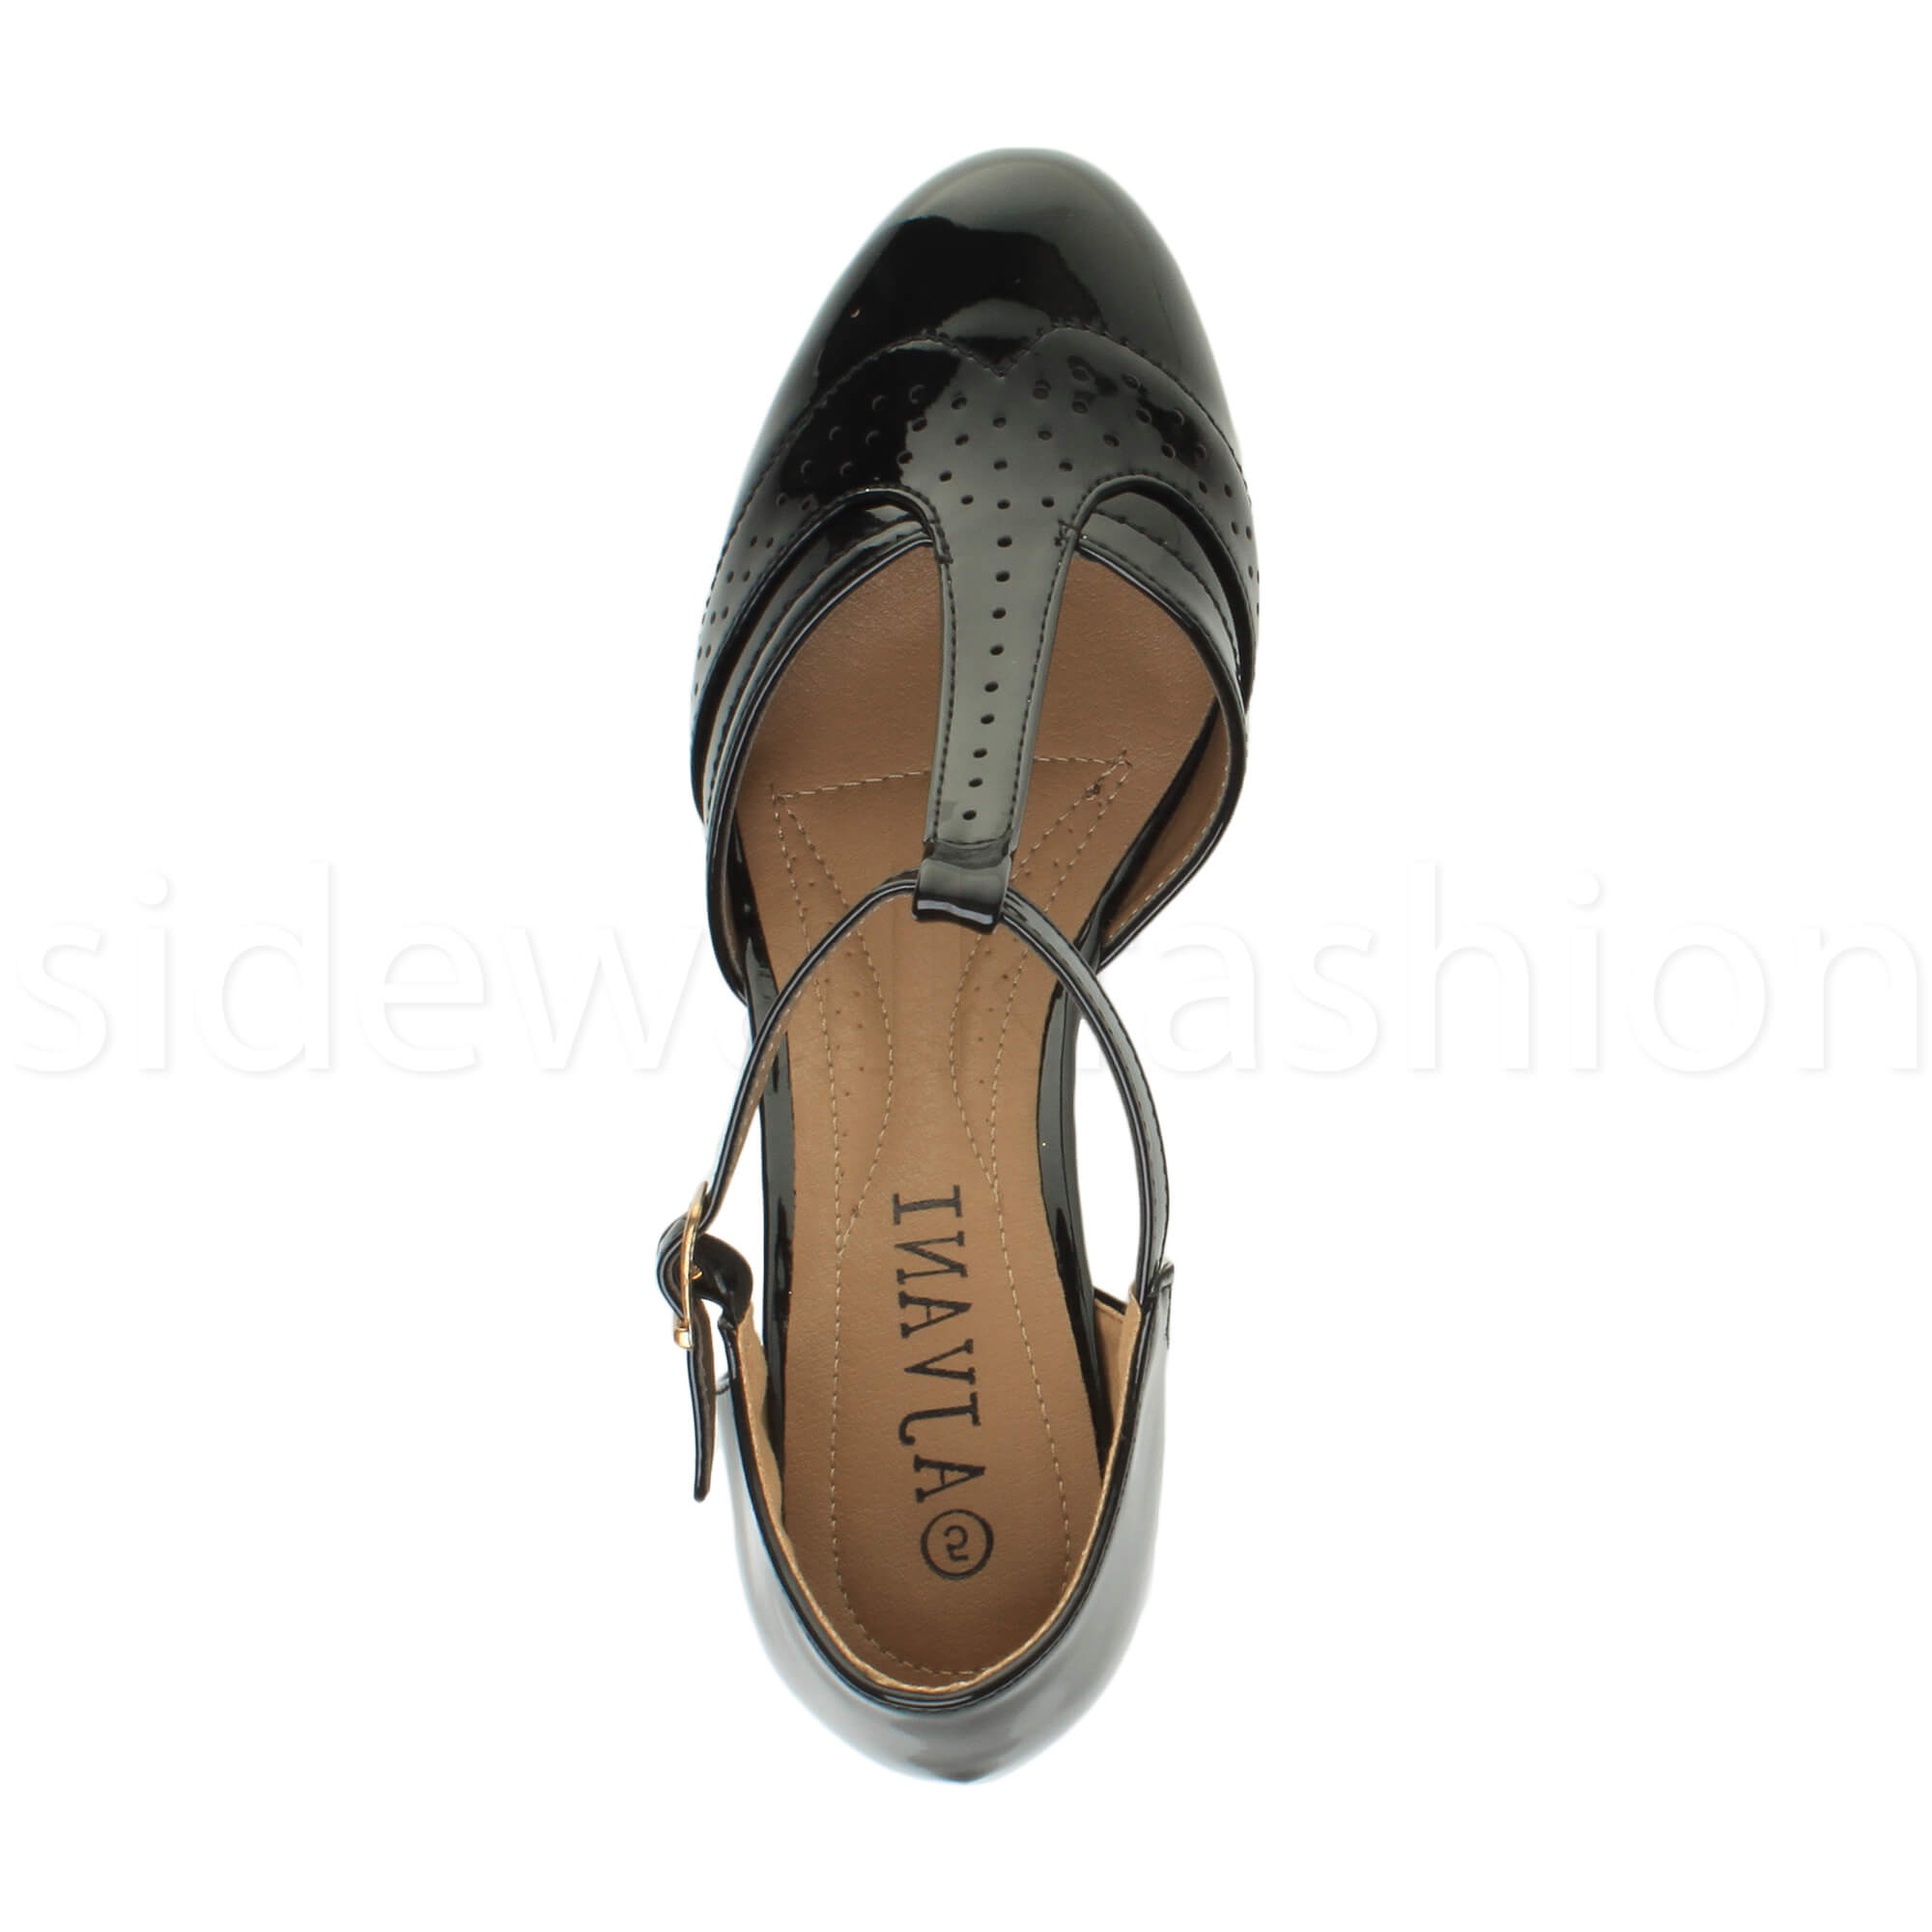 Womens-ladies-block-low-mid-heel-smart-work-Mary-Jane-T-bar-brogue-court-shoes thumbnail 13